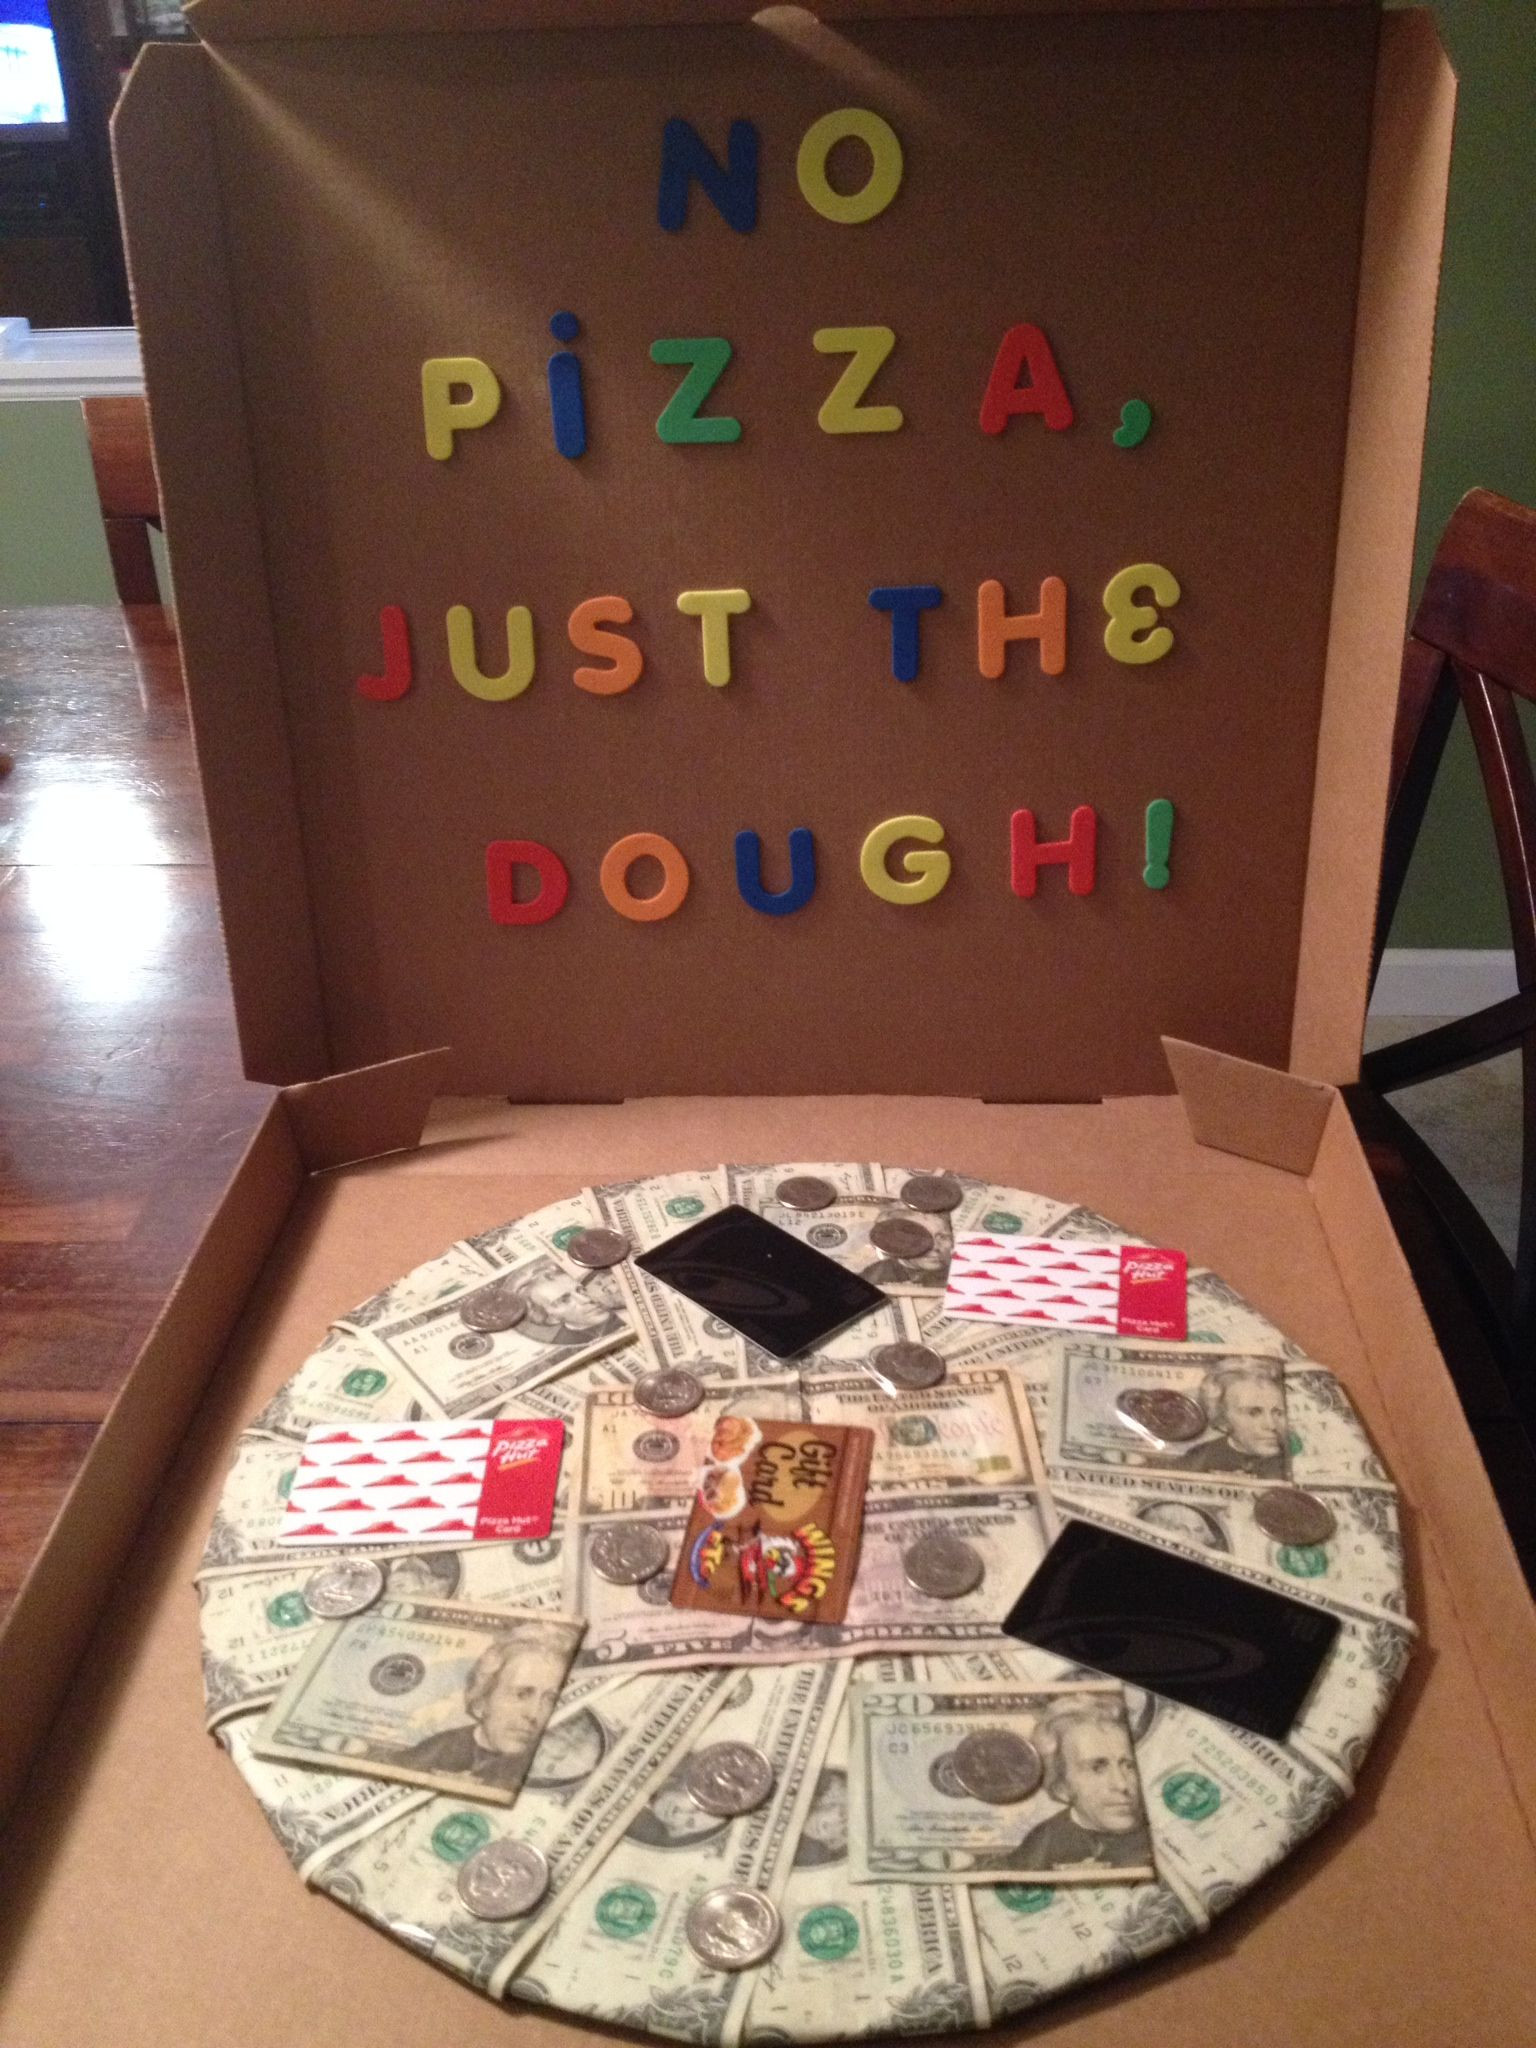 Best ideas about 18Th Birthday Gift Ideas For Son . Save or Pin No pizza just the dough Made this for my son s 19th Now.